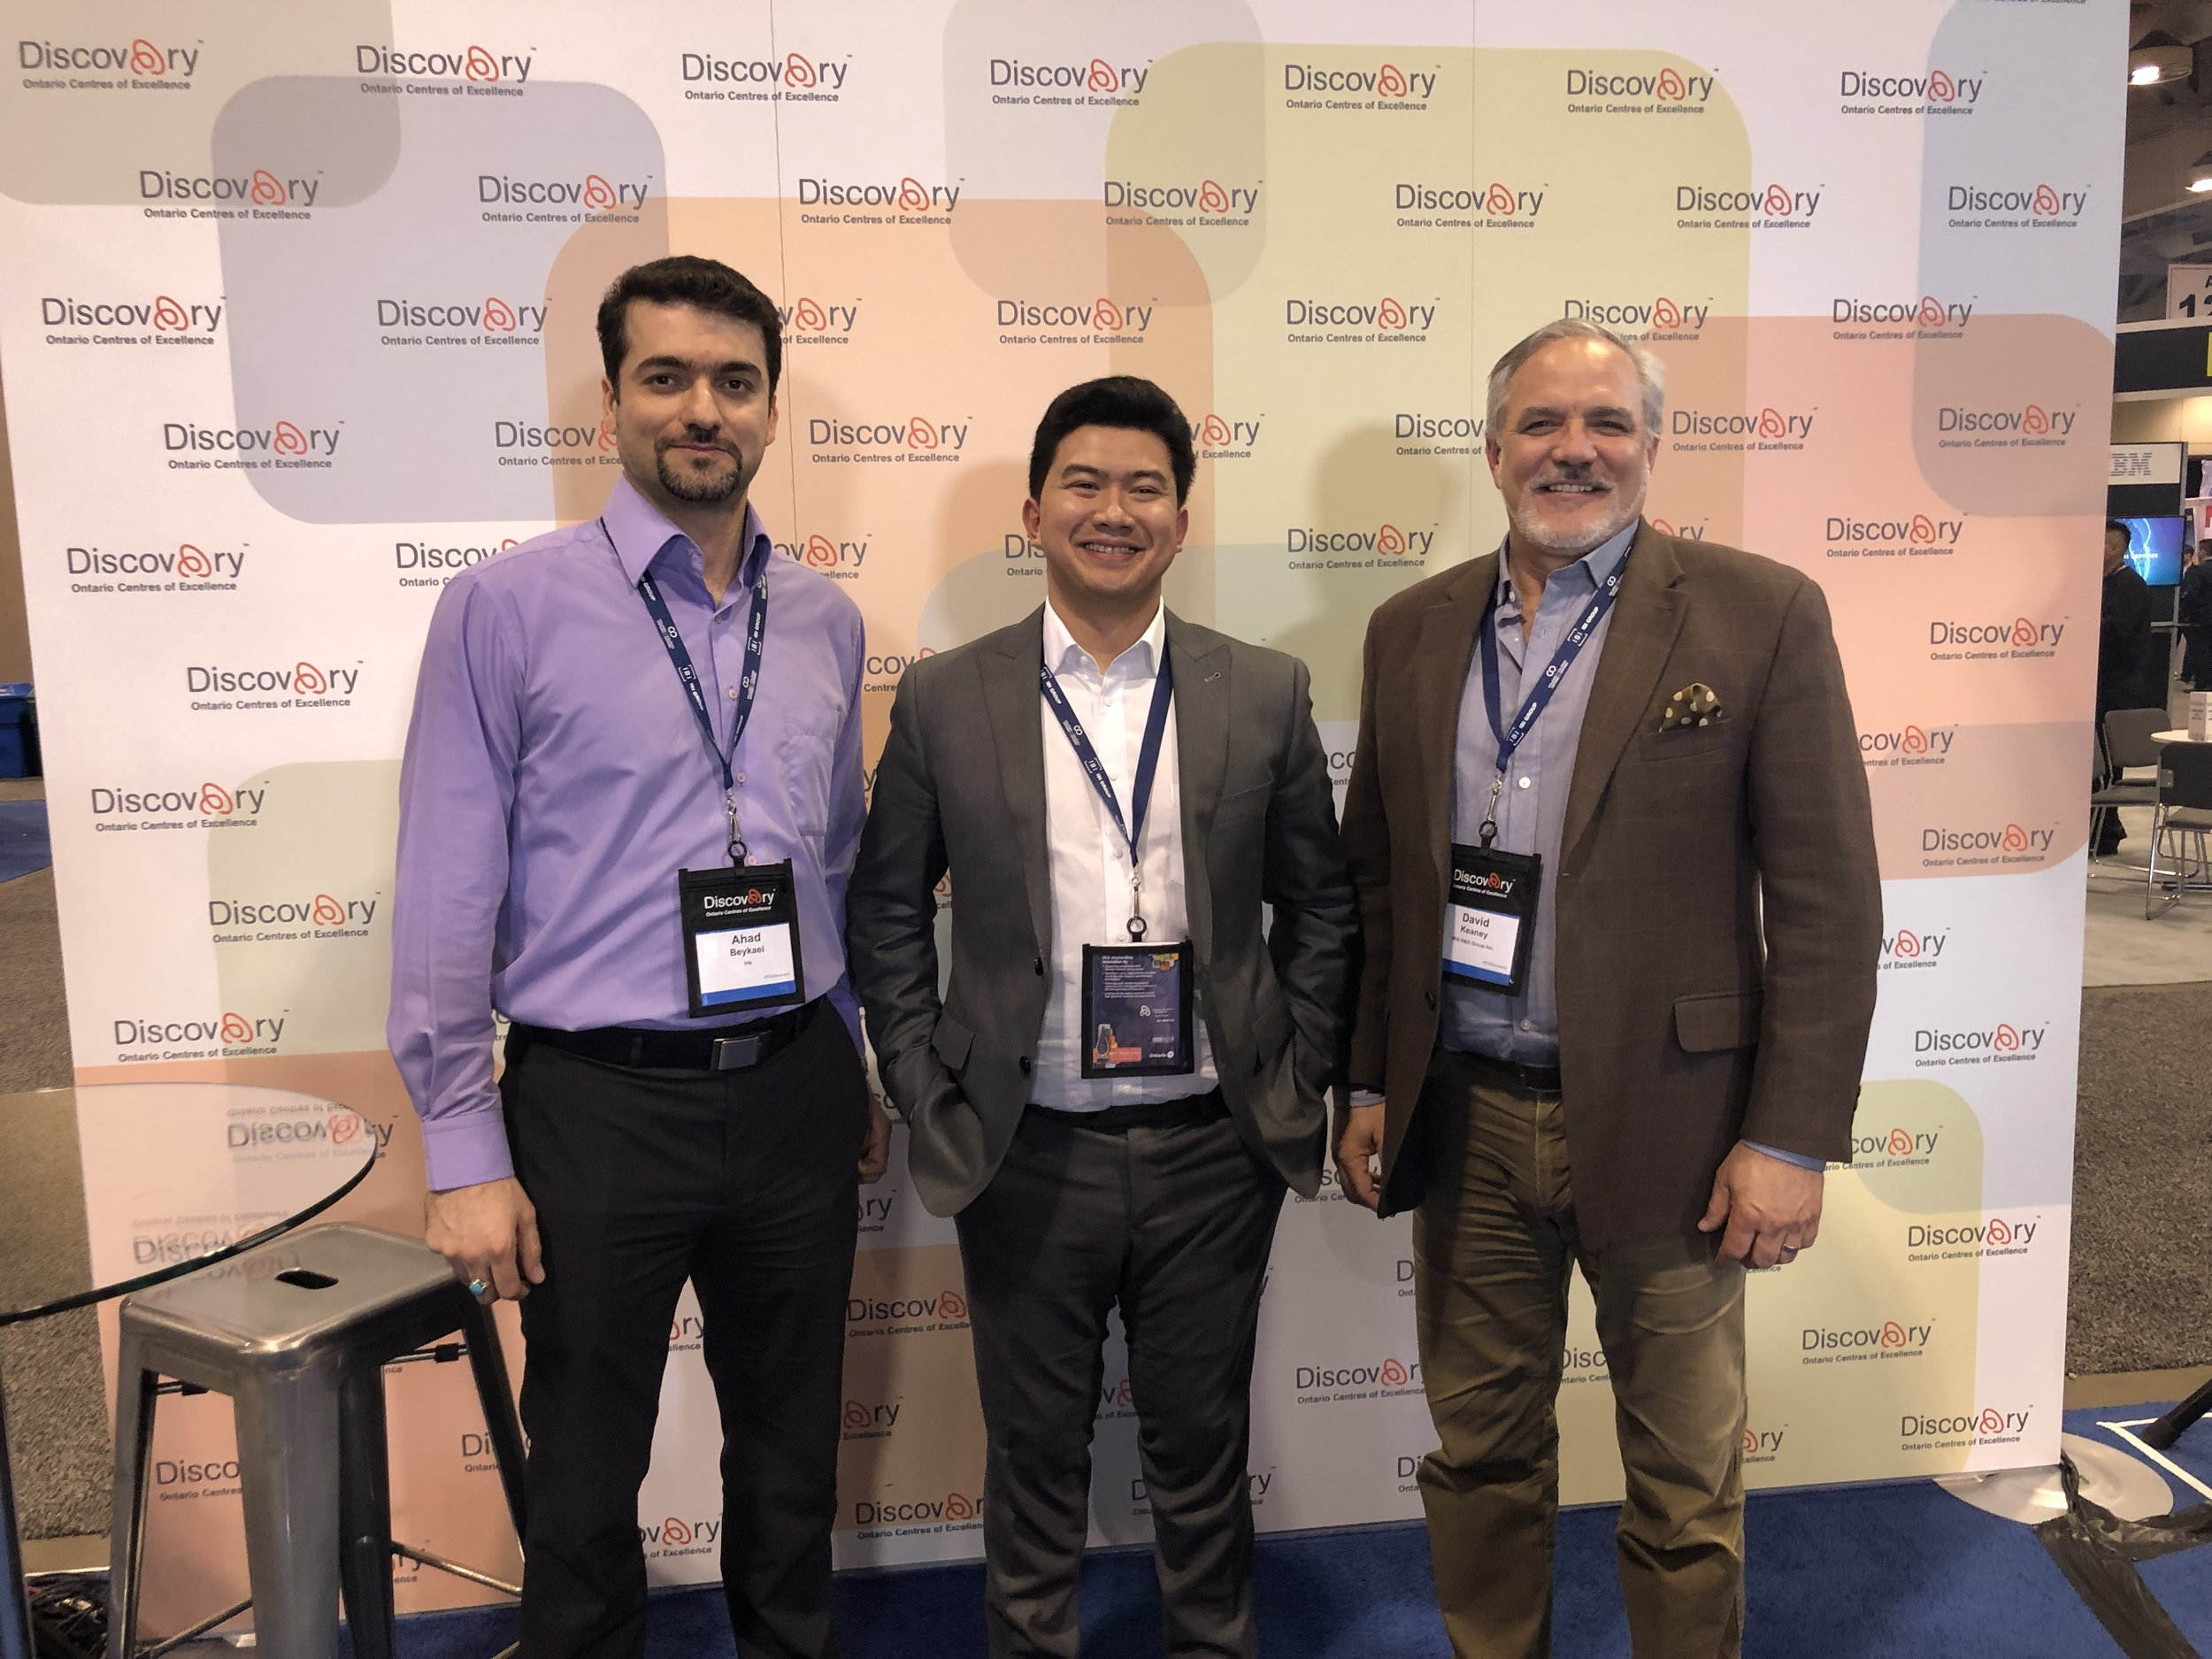 Ahad Beykaei CTO, Emil Sylvester Ramos CEO and David Keaney CFO at the Discovery 2019.